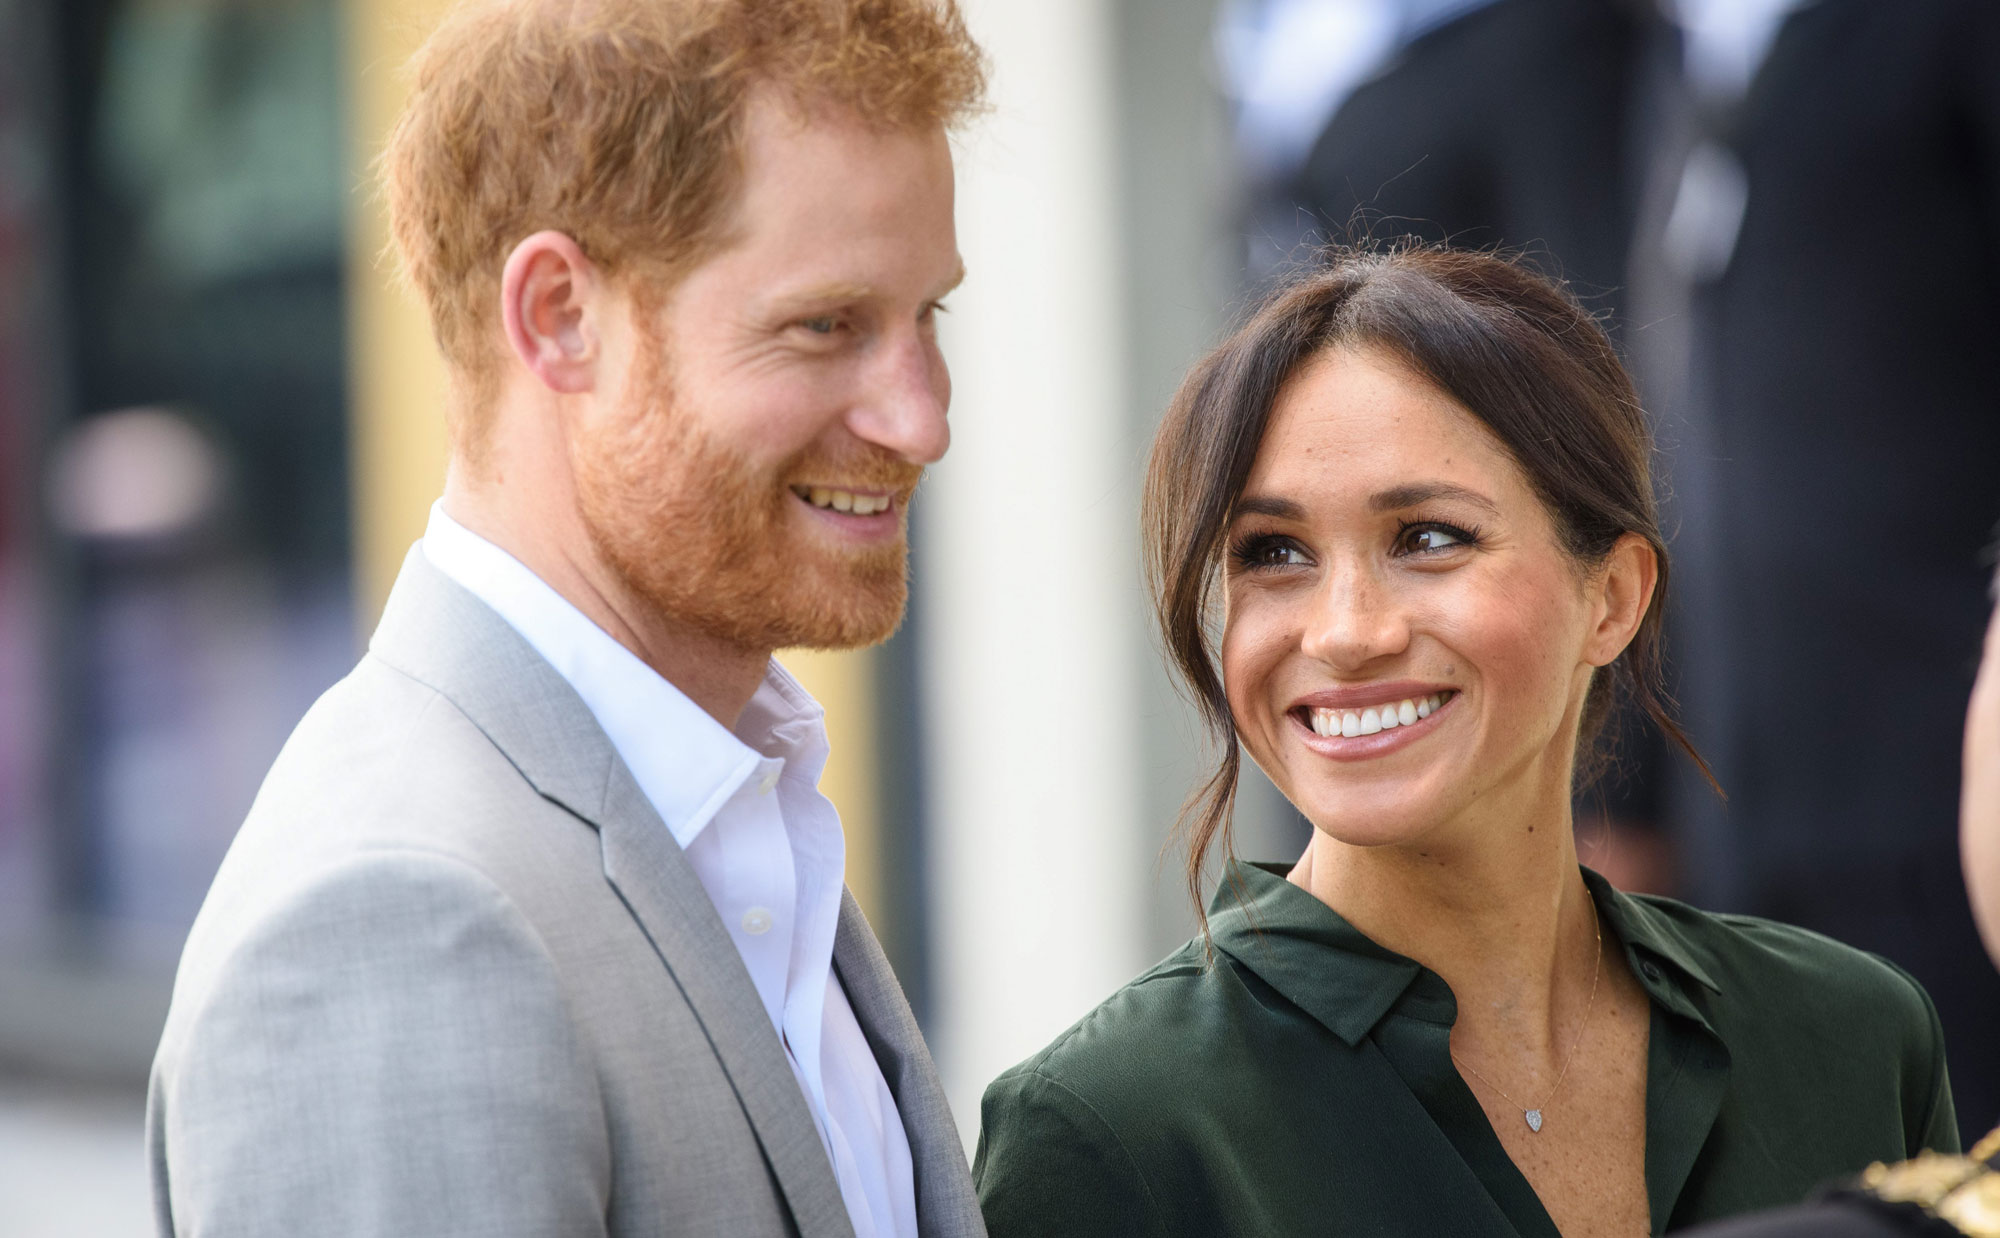 prince harry meghan markle expecting their 1st child in spring prince harry meghan markle expecting their 1st child in spring